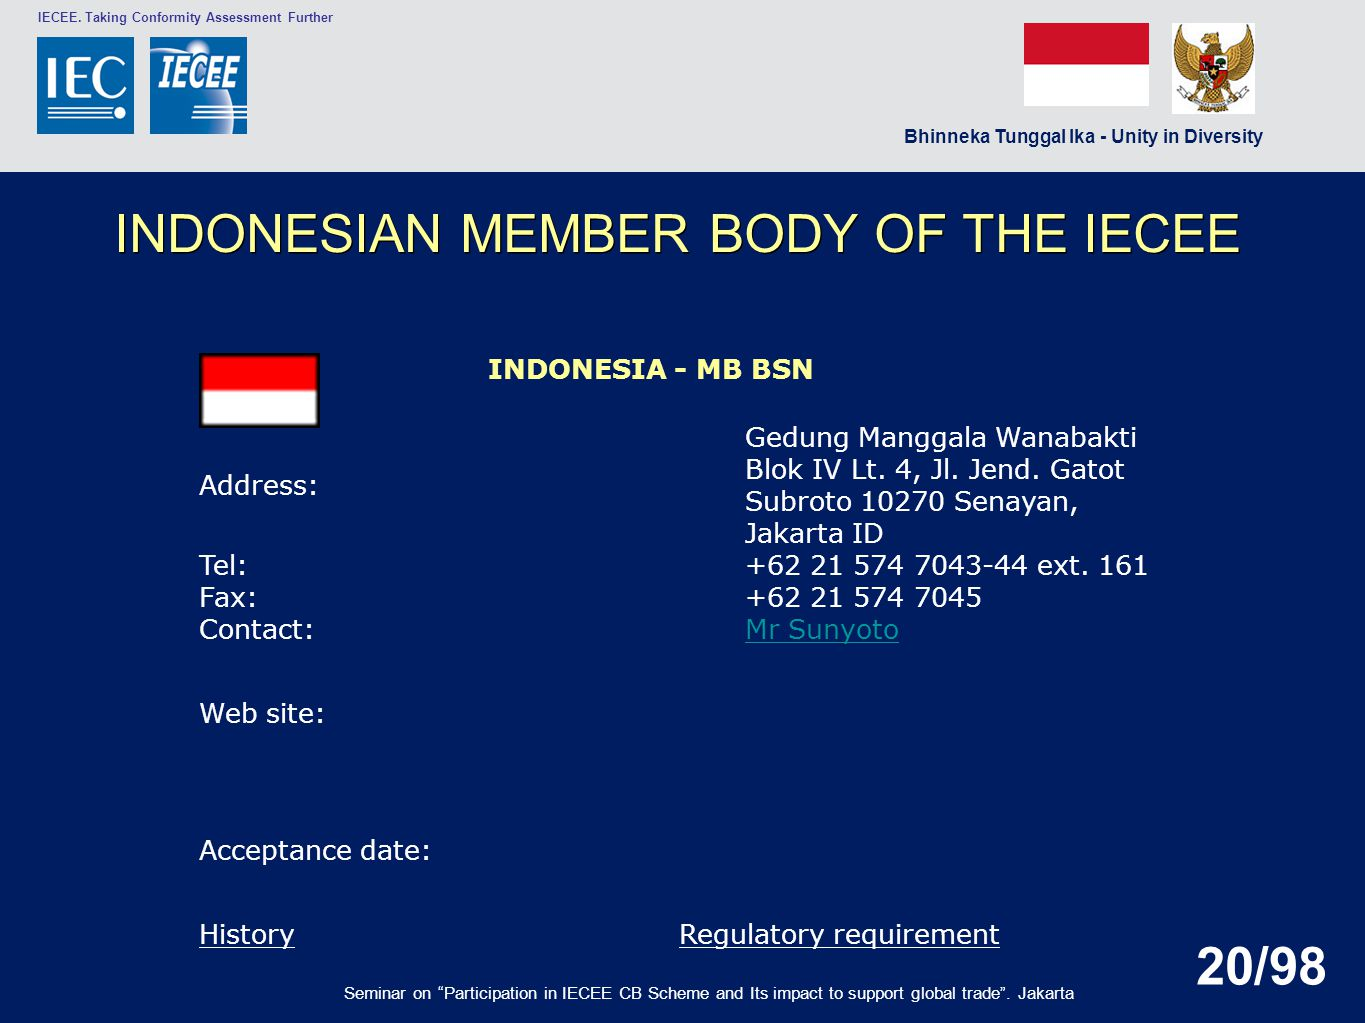 INDONESIAN MEMBER BODY OF THE IECEE